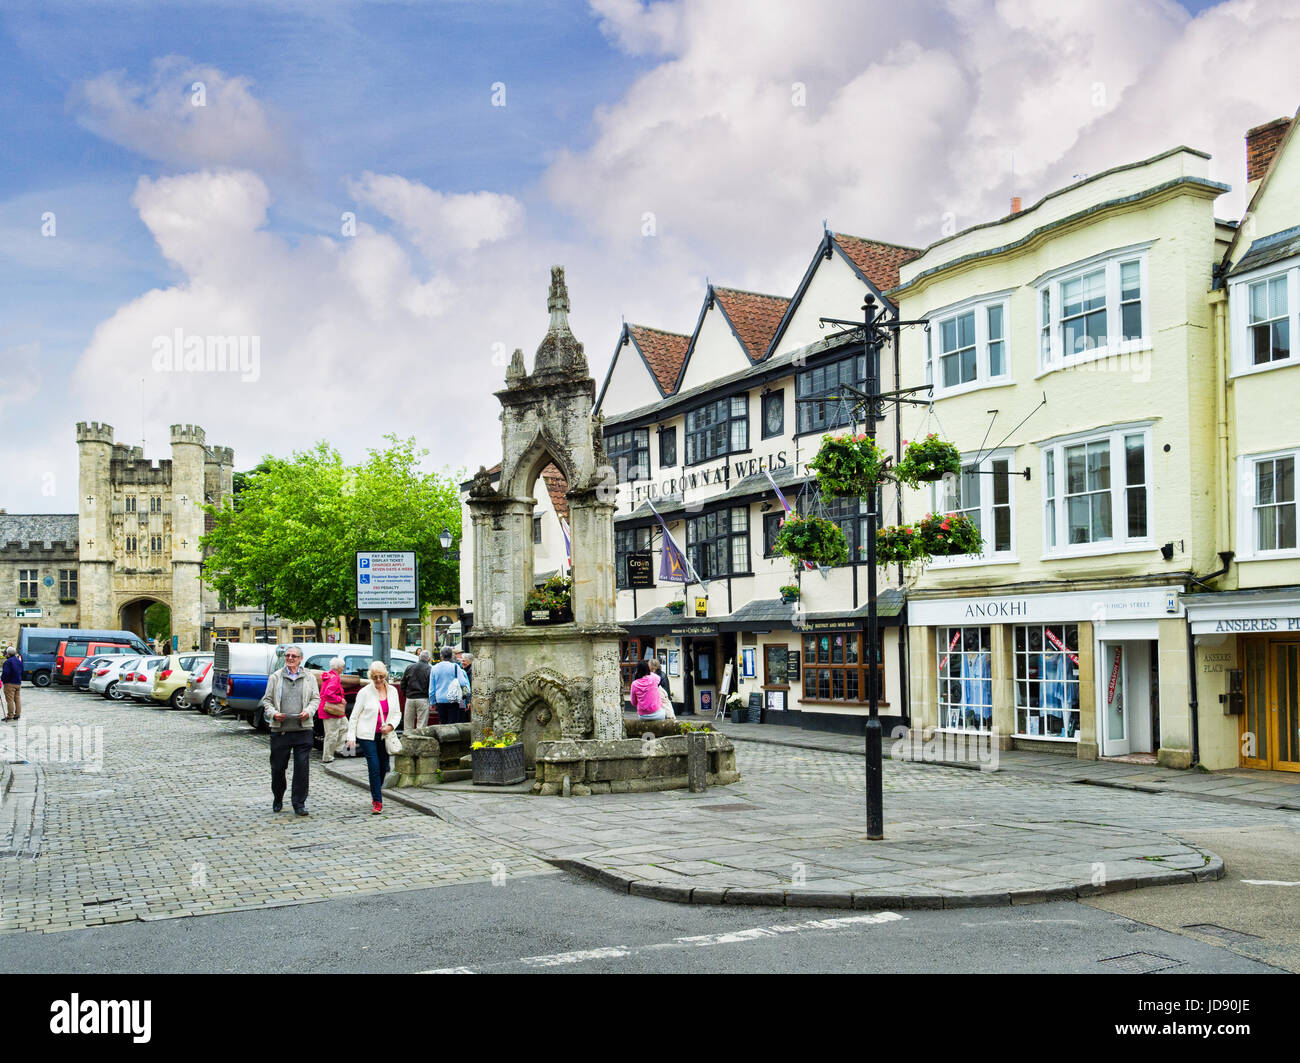 8 June 2017: Wells, Somerset, England, UK - The town centre of the old cathedral city of Wells, with the Market - Stock Image